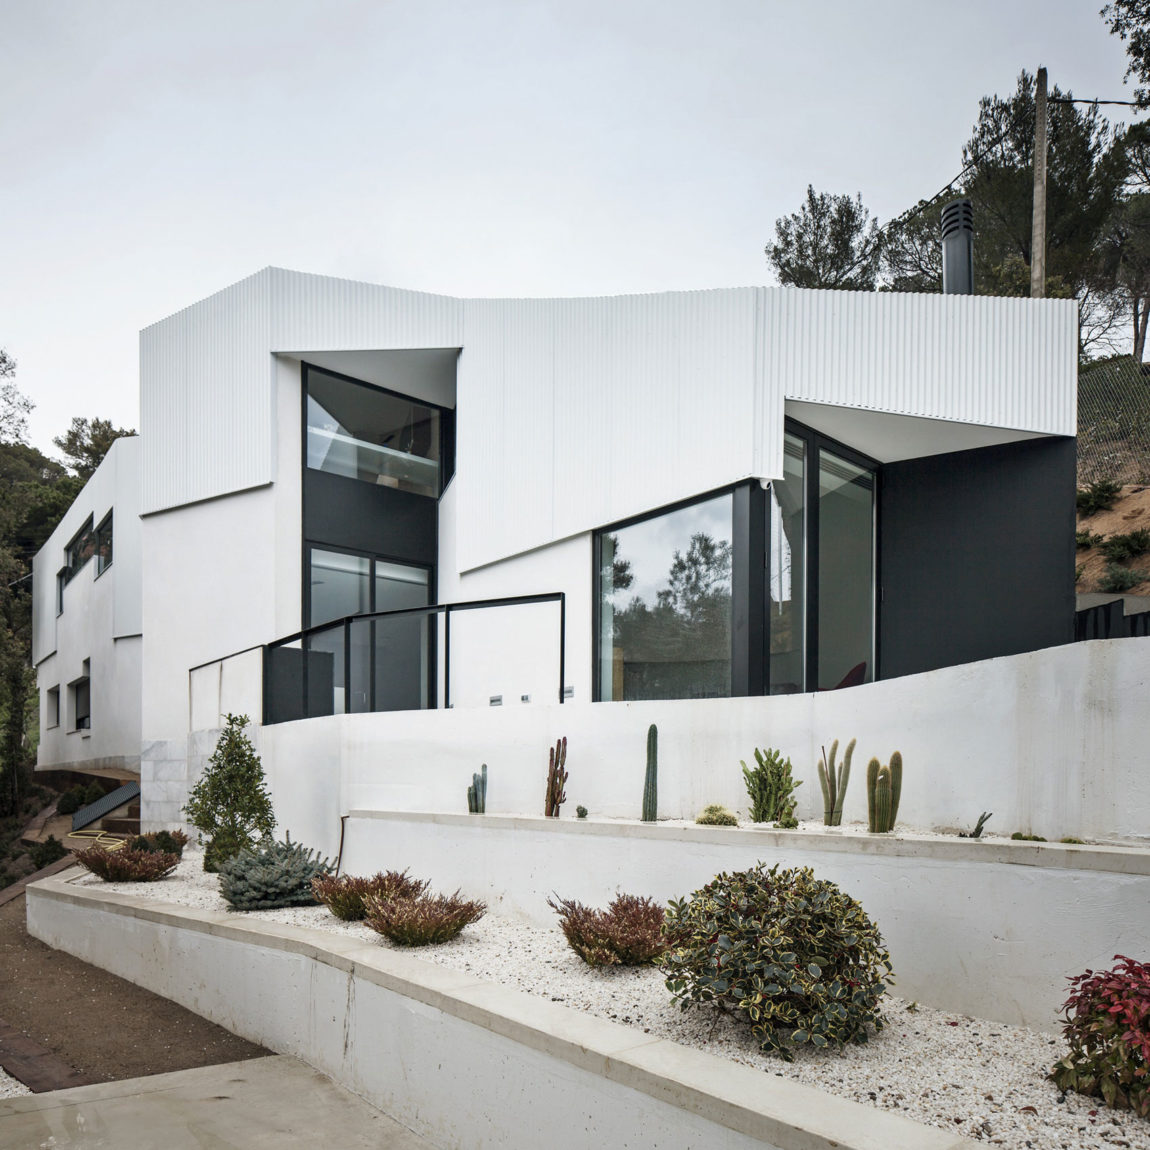 House AT by MIRAG Arquitectura i Gestió (2)